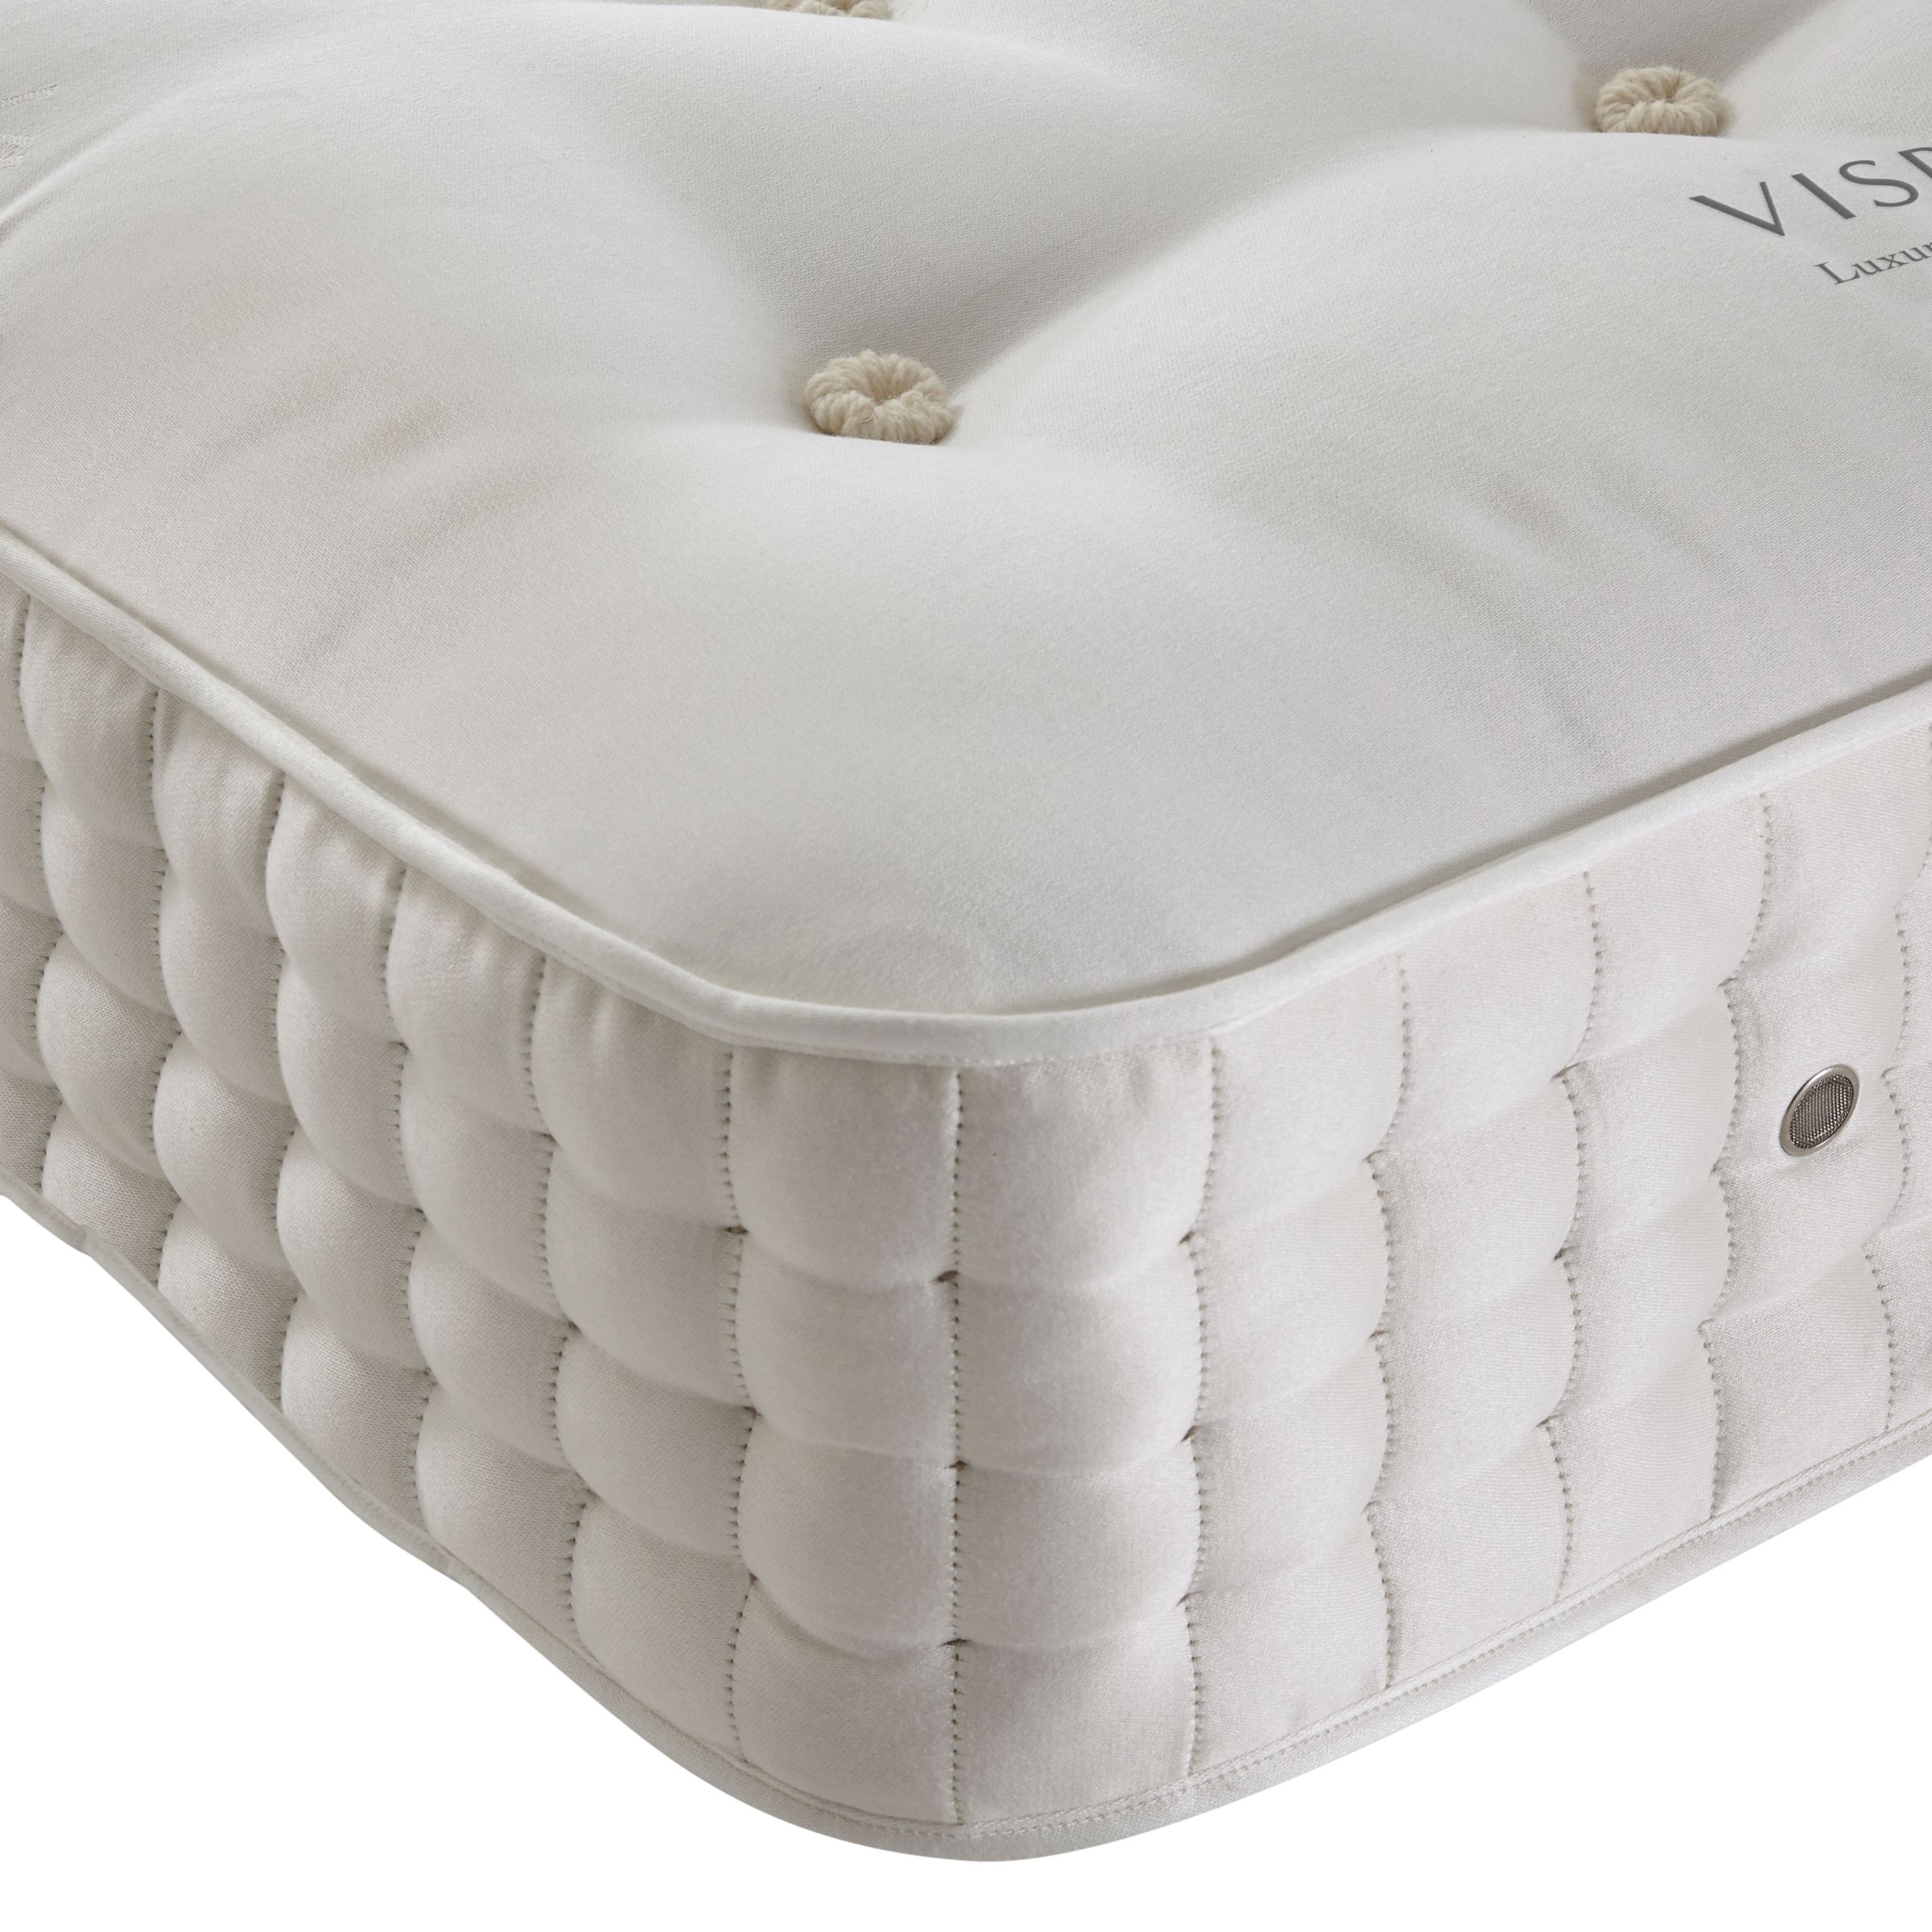 Vi-Spring Stowe Superb Zip Link Mattress, Super Kingsize